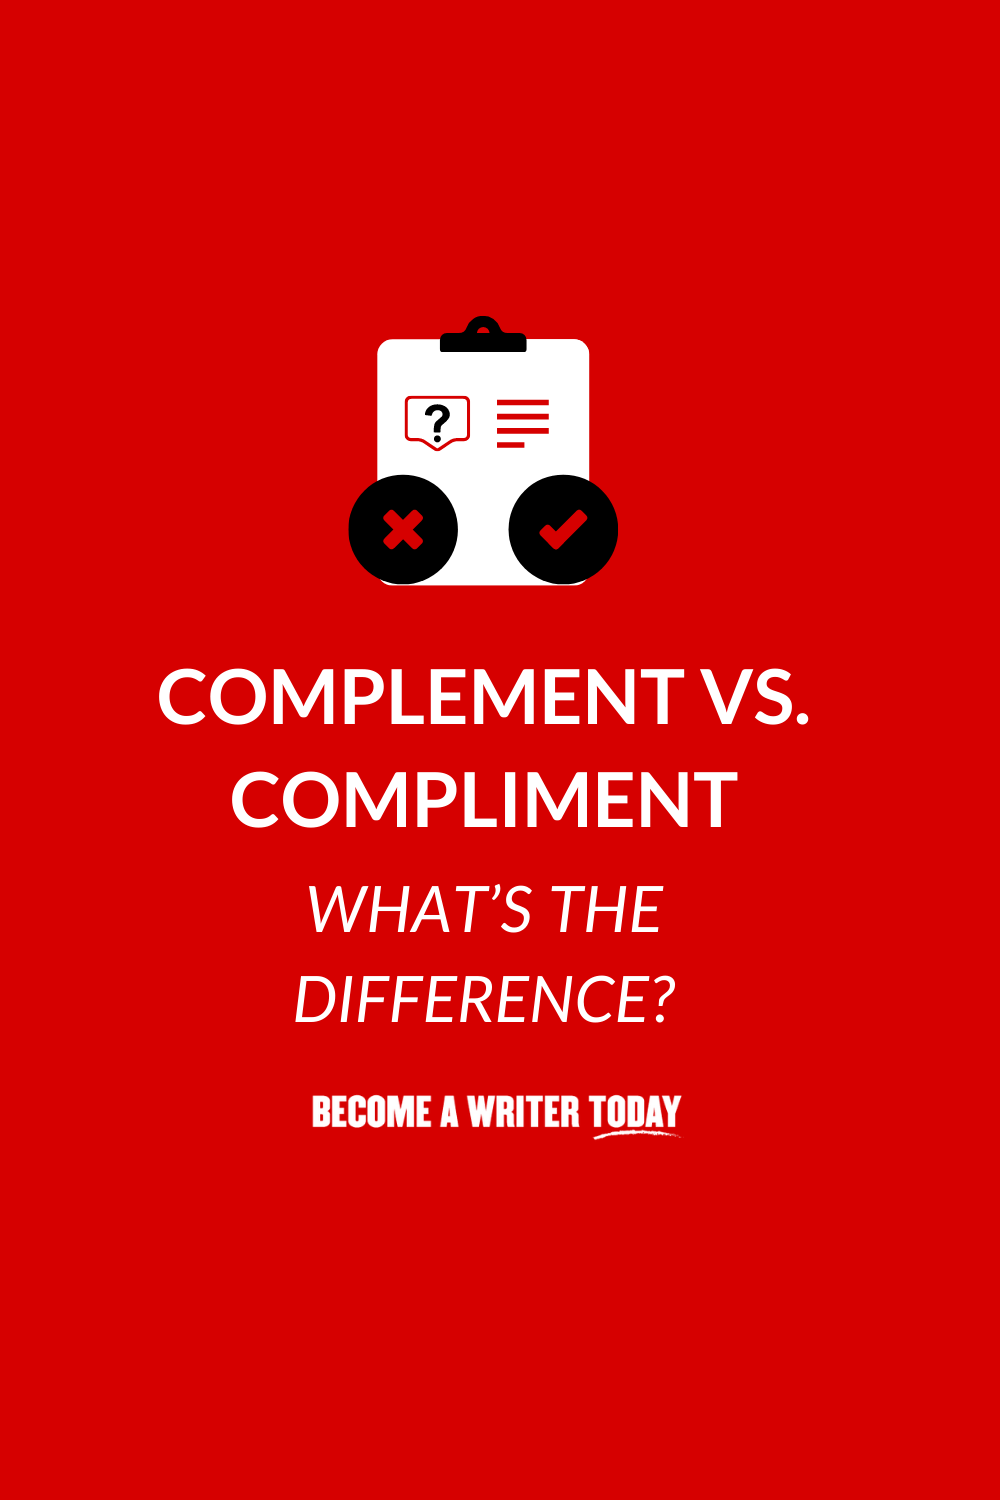 Complement vs. Compliment: What's the Difference?